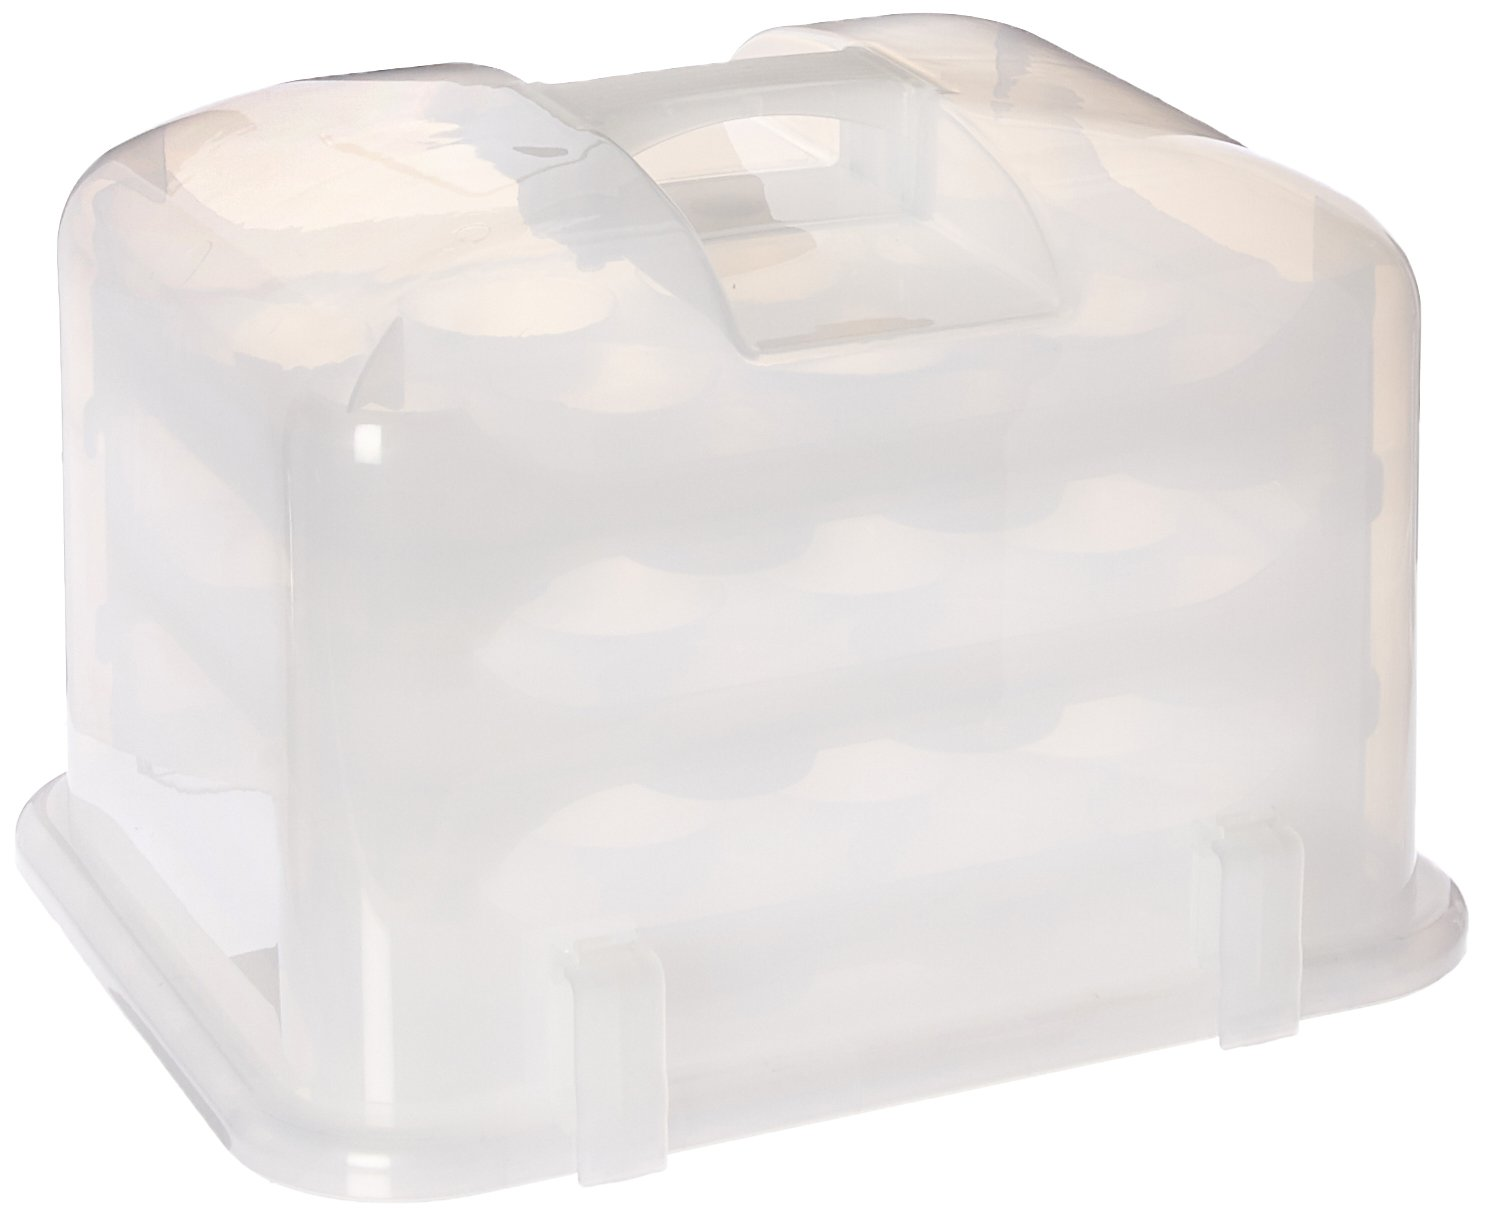 Cupcake Courier G0214B Cupcake Carrier- White Translucent, by Cupcake Courier